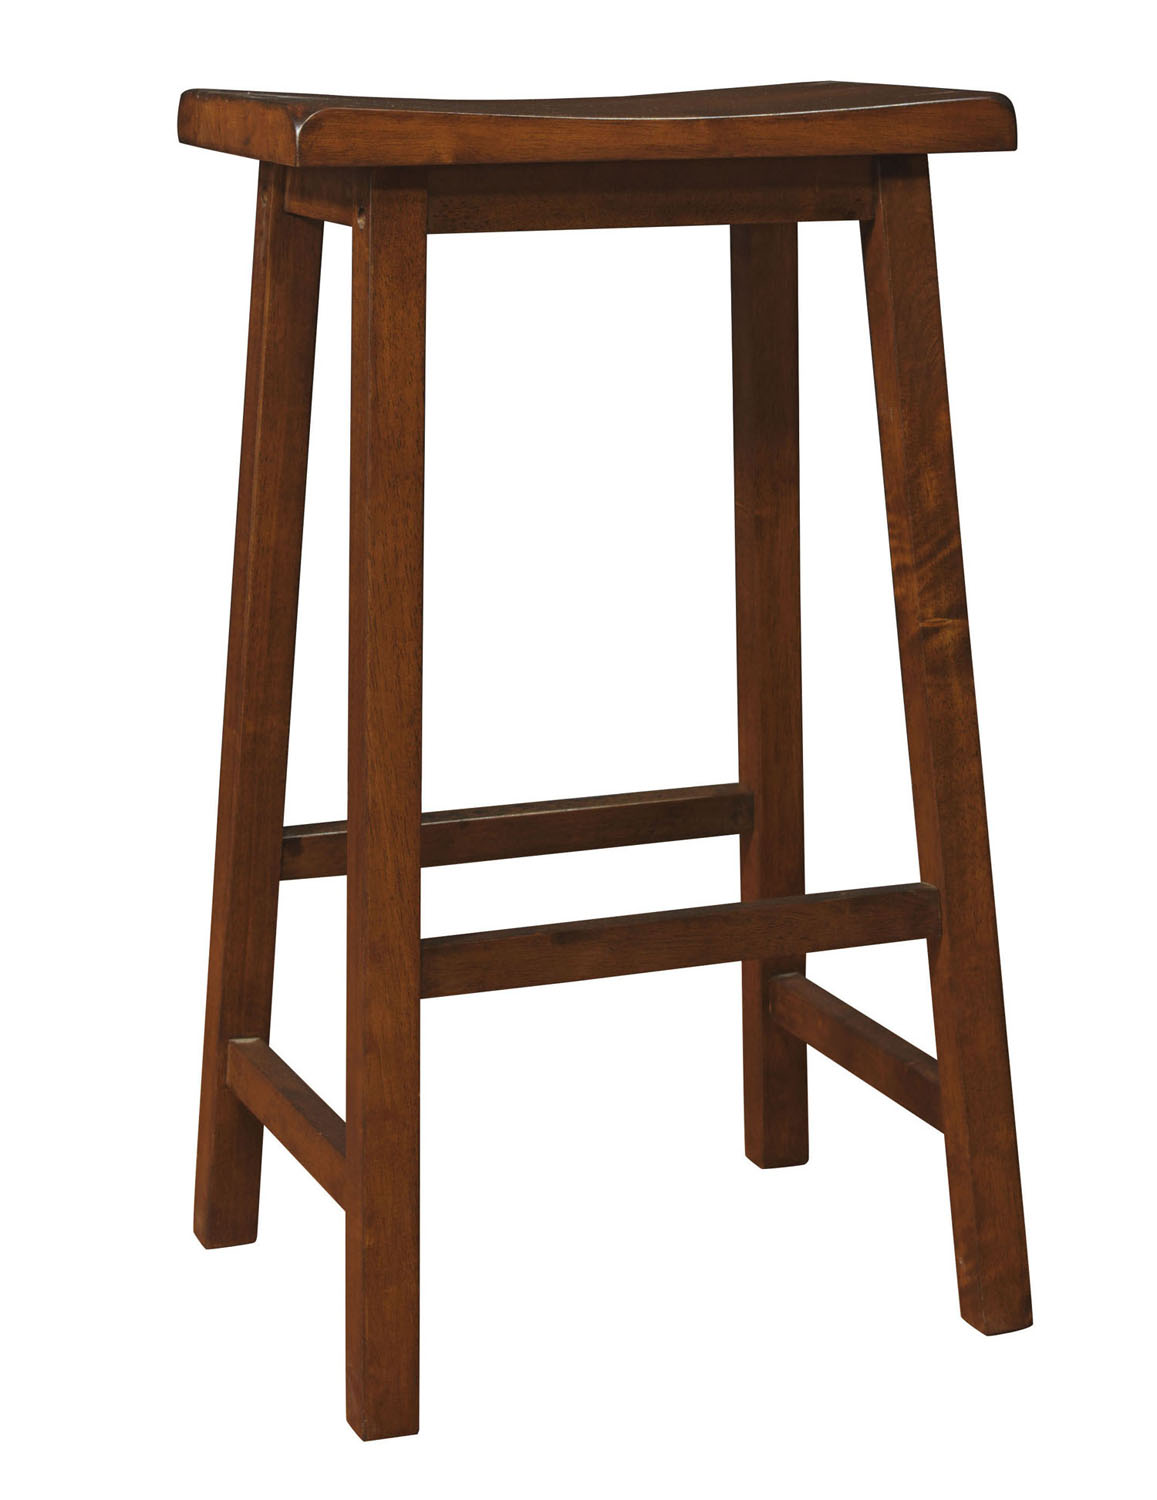 "Barstool - 2 Pieces / 29""H / Walnut Saddle Seat"